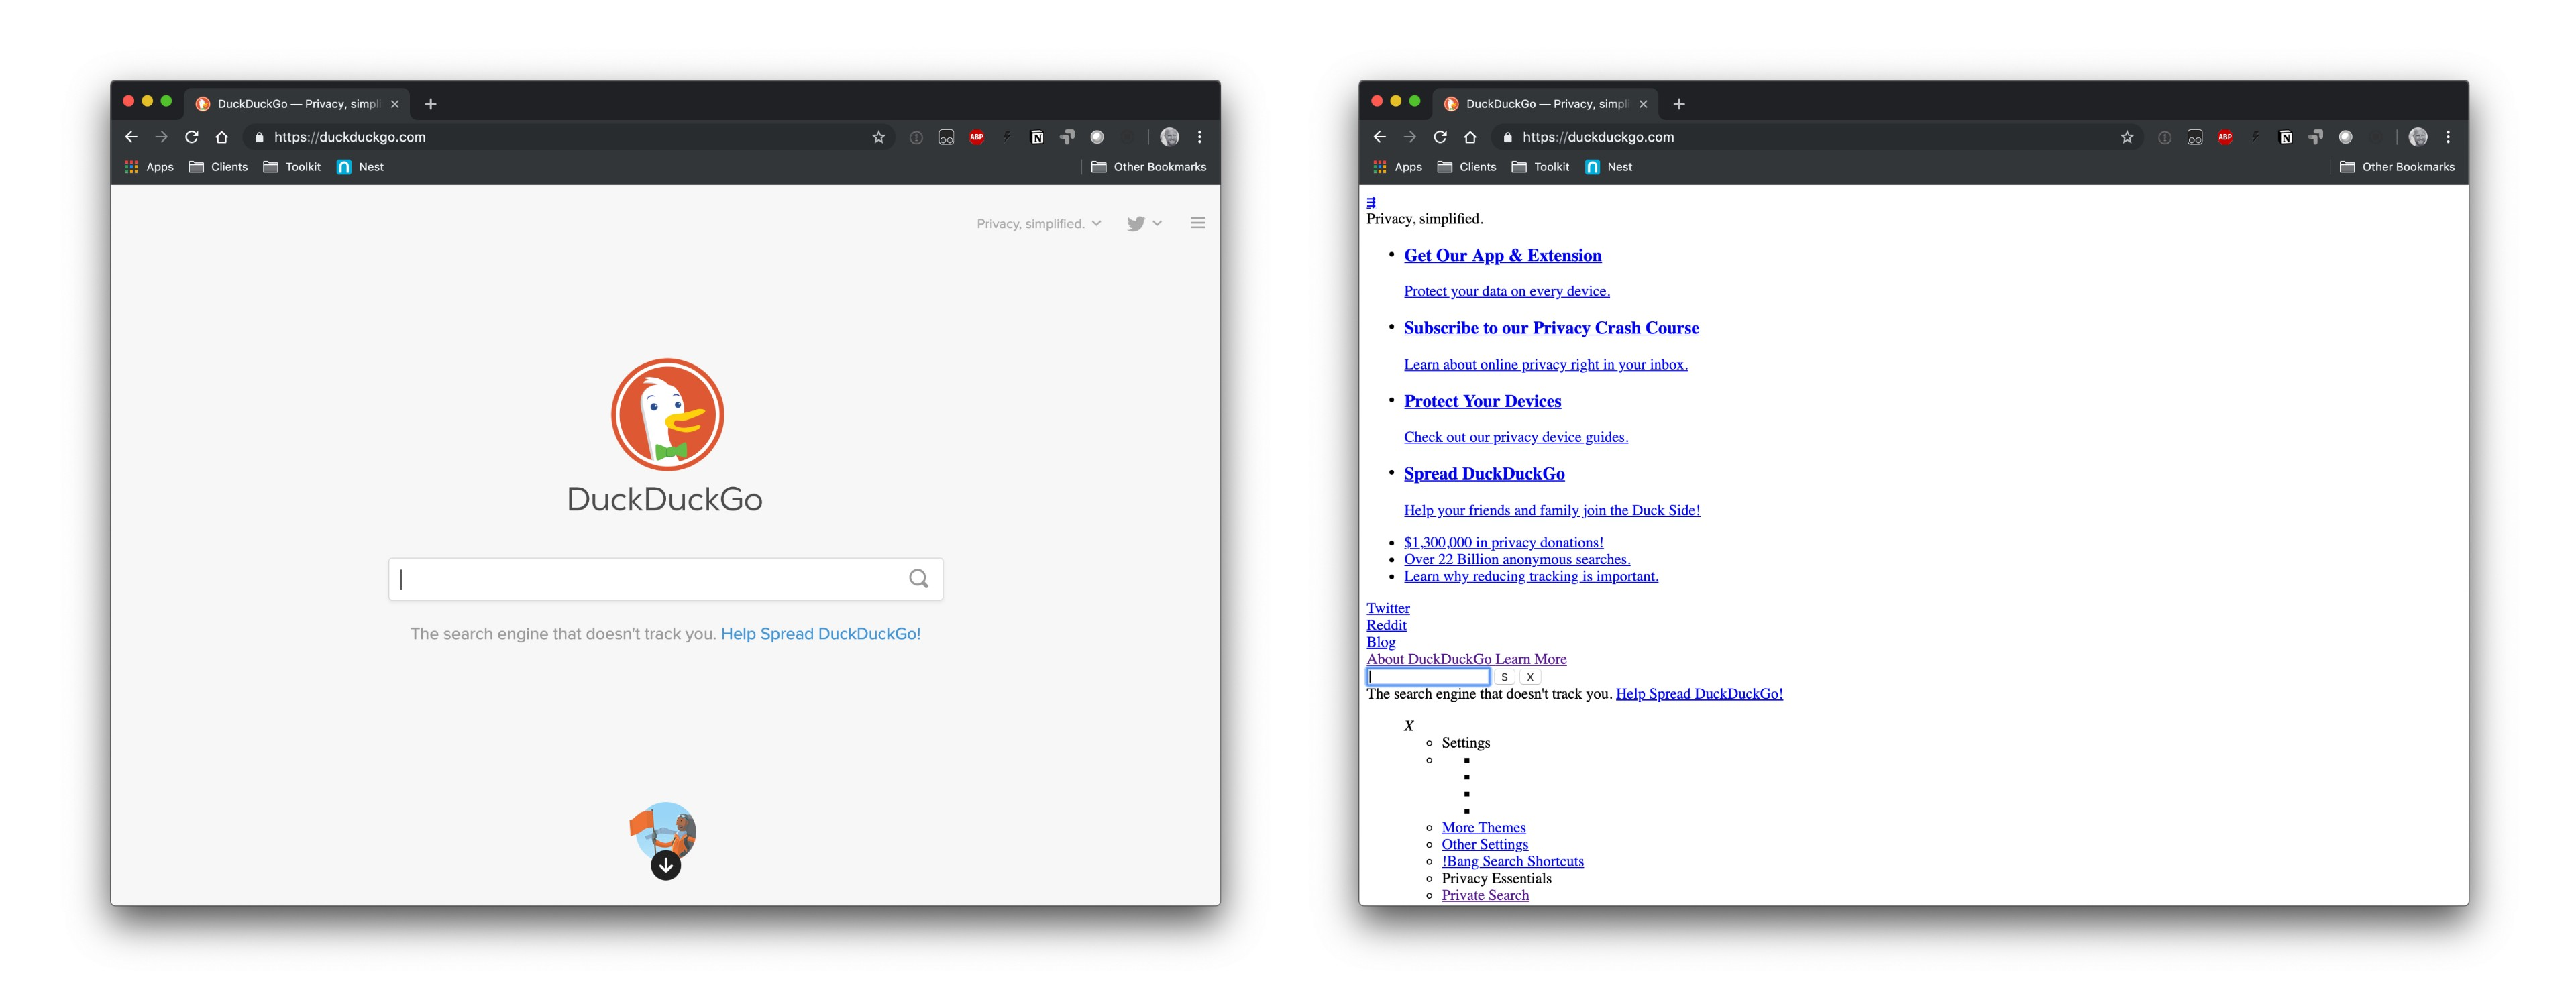 The DuckDuckGo homepage with and without CSS